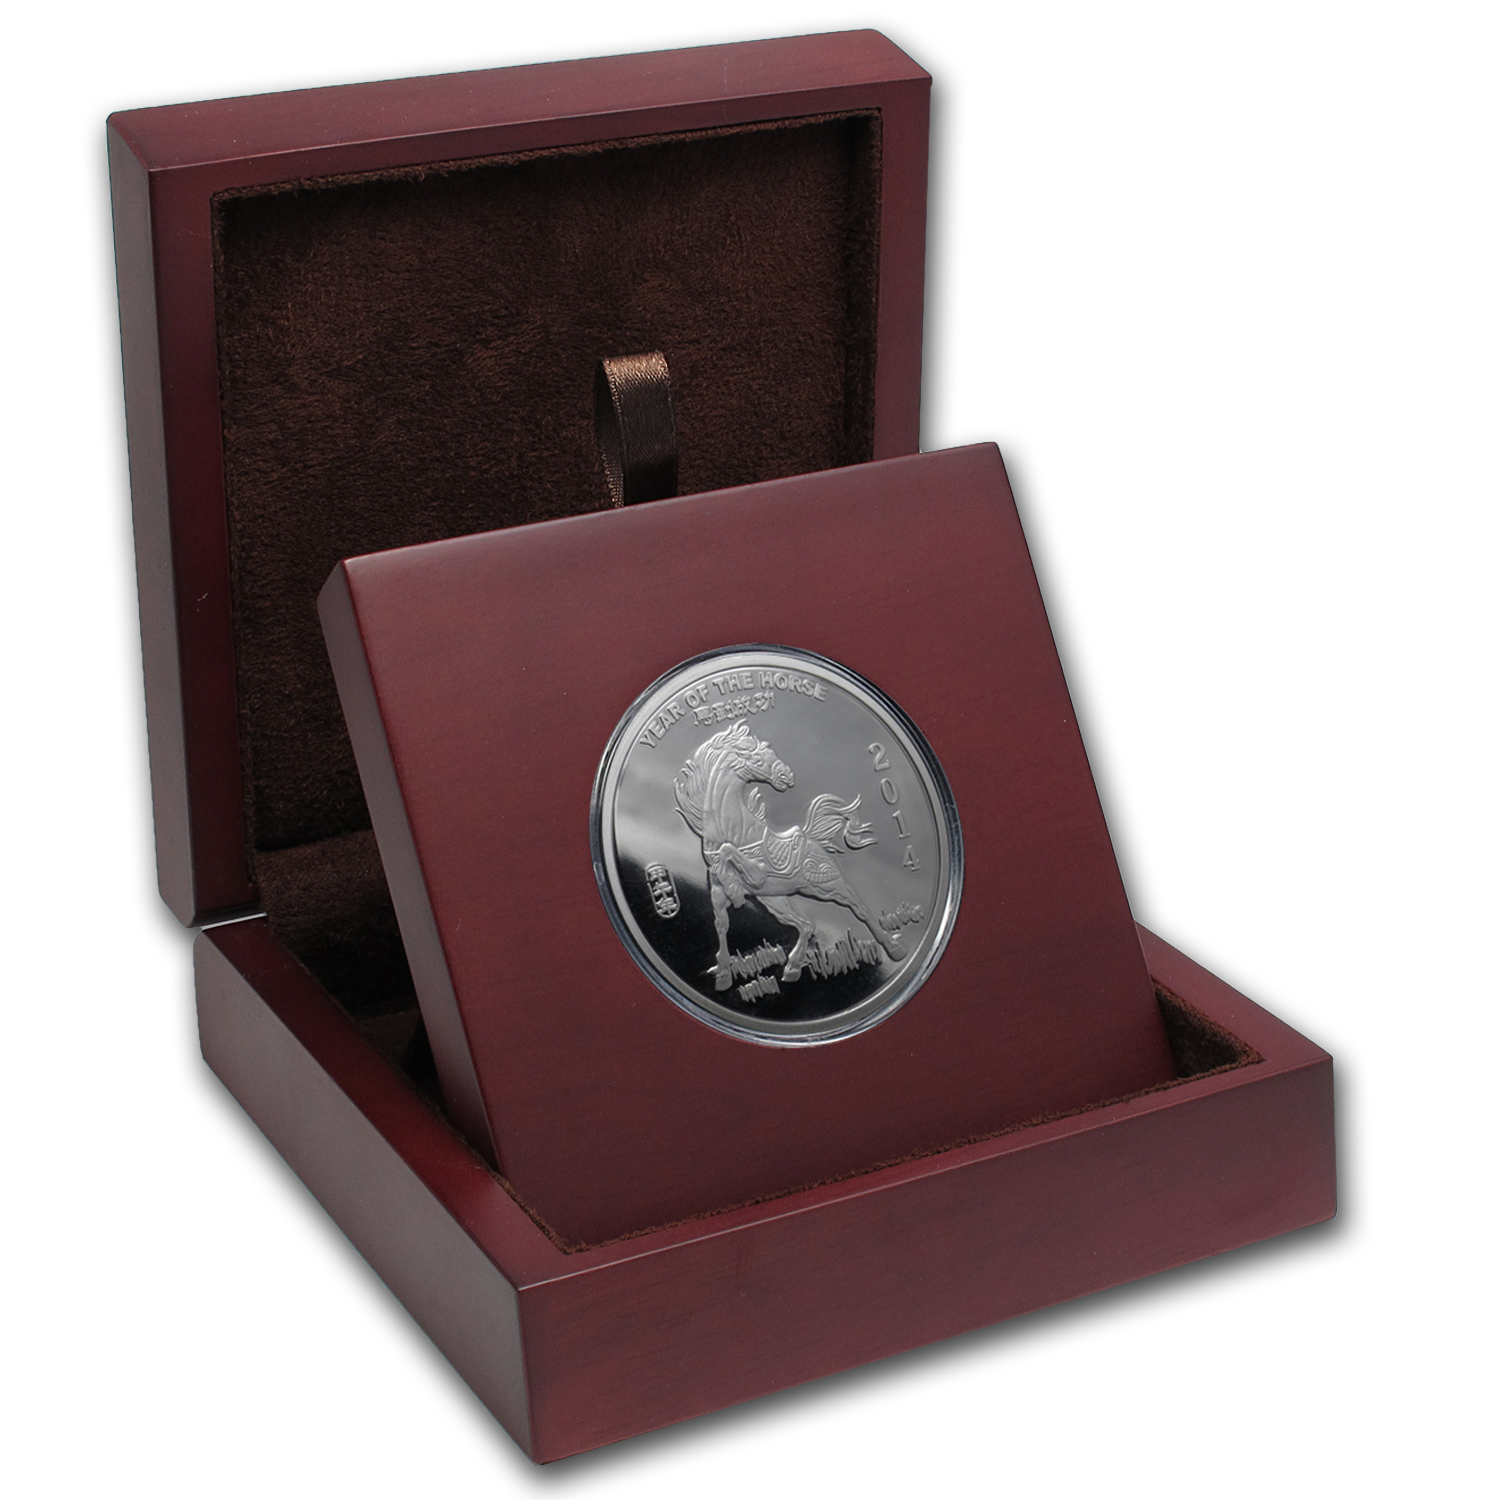 APMEX Wood Gift Box - 2 oz Silver Round SMI (50.8 mm)